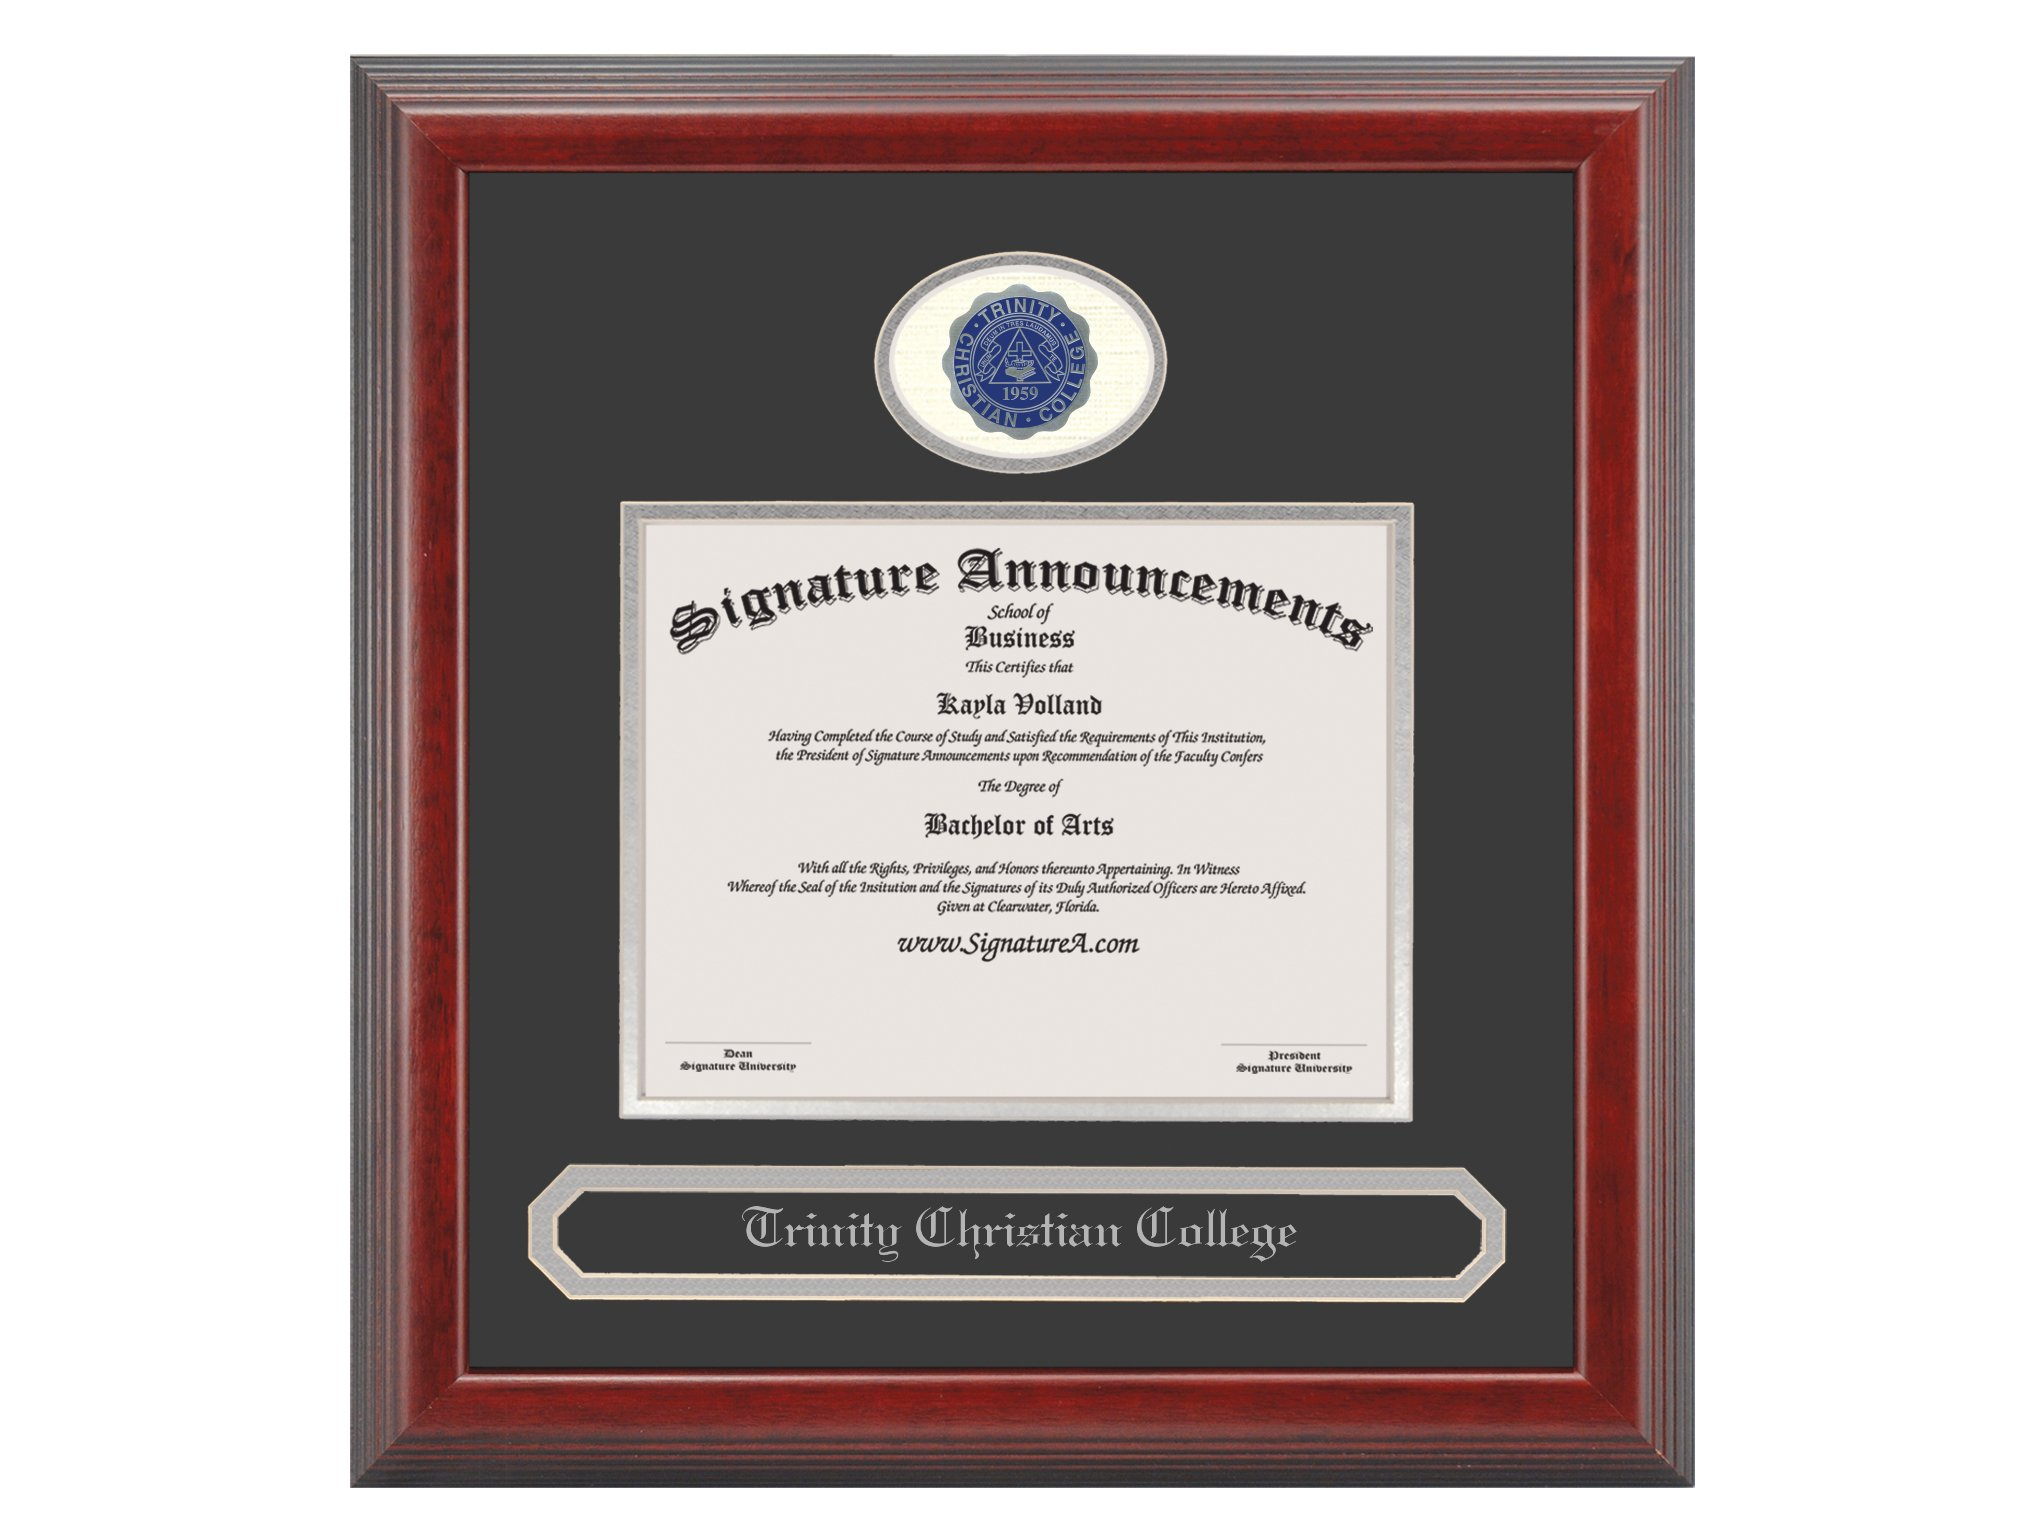 Signature Announcements Trinity Christian College Undergraduate Sculpted Foil Seal & Name Graduation Diploma Frame, 16'' x 16'', Cherry